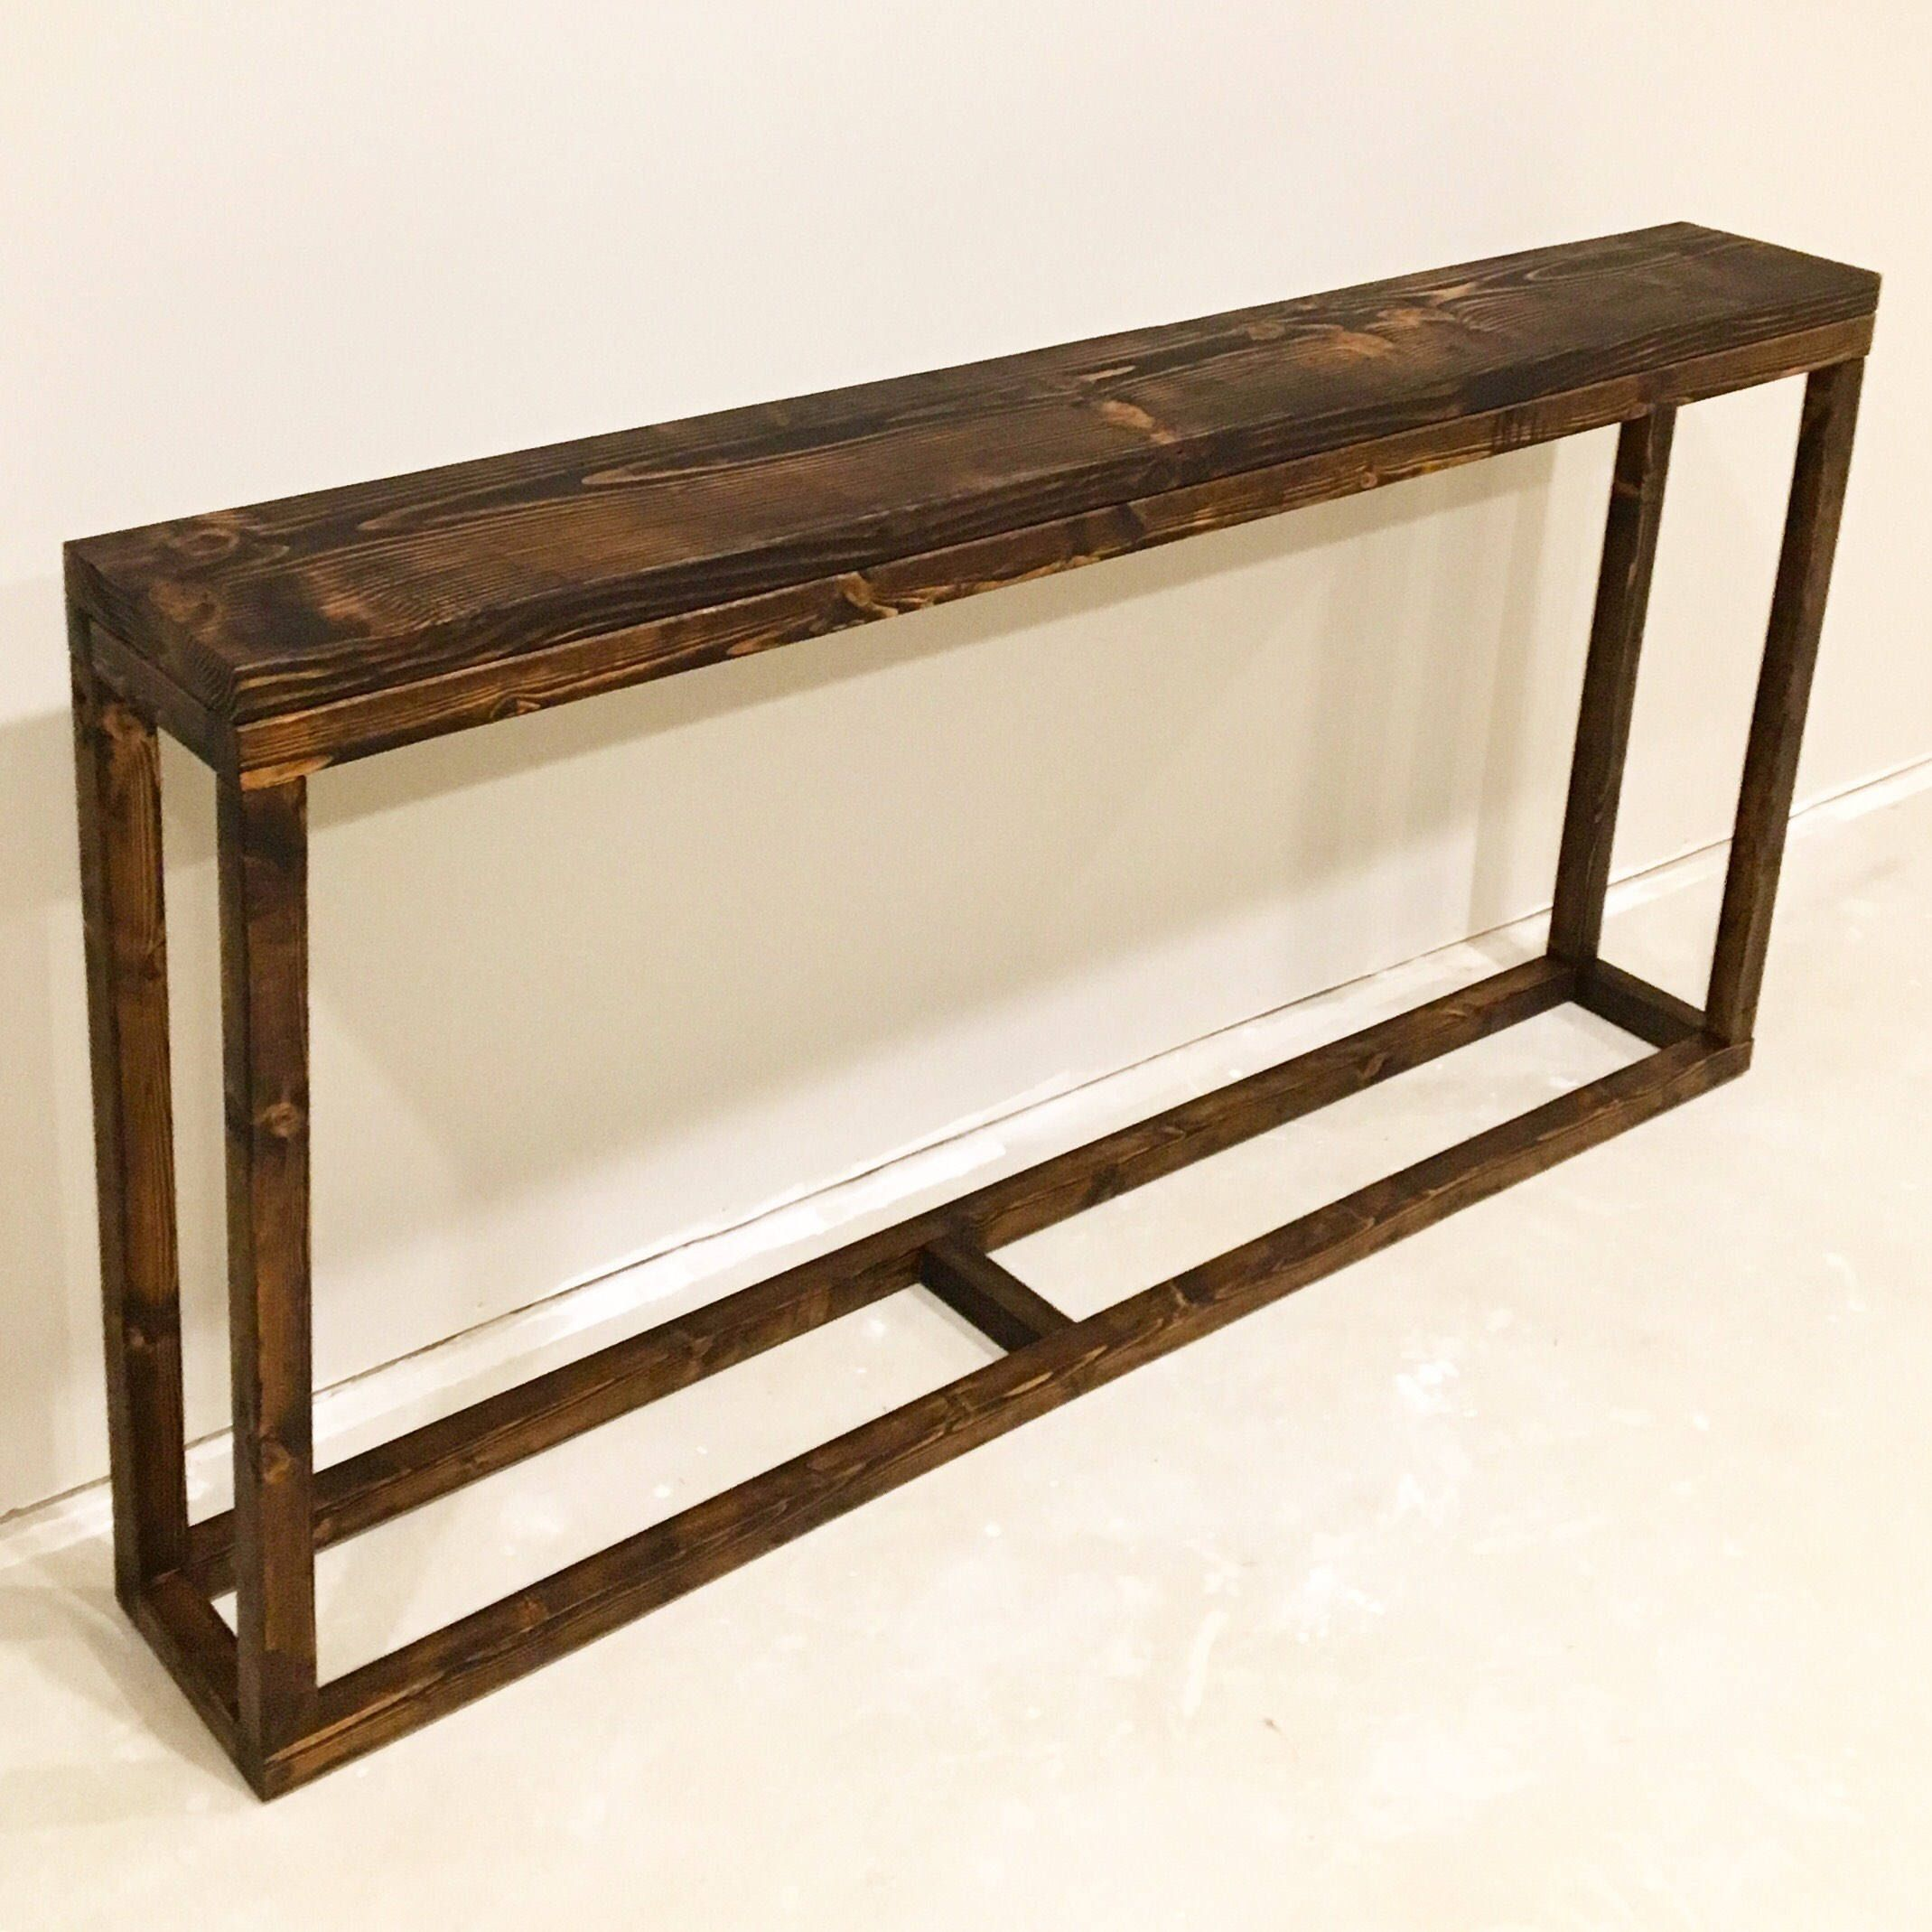 Console Table Sofa Table Behind Couch Table Behind Sofa Table Entryway Table Behind Couch Bar Living Room Bar Long Narrow Table Behind Couch Narrow Console Table Behind Sofa Table